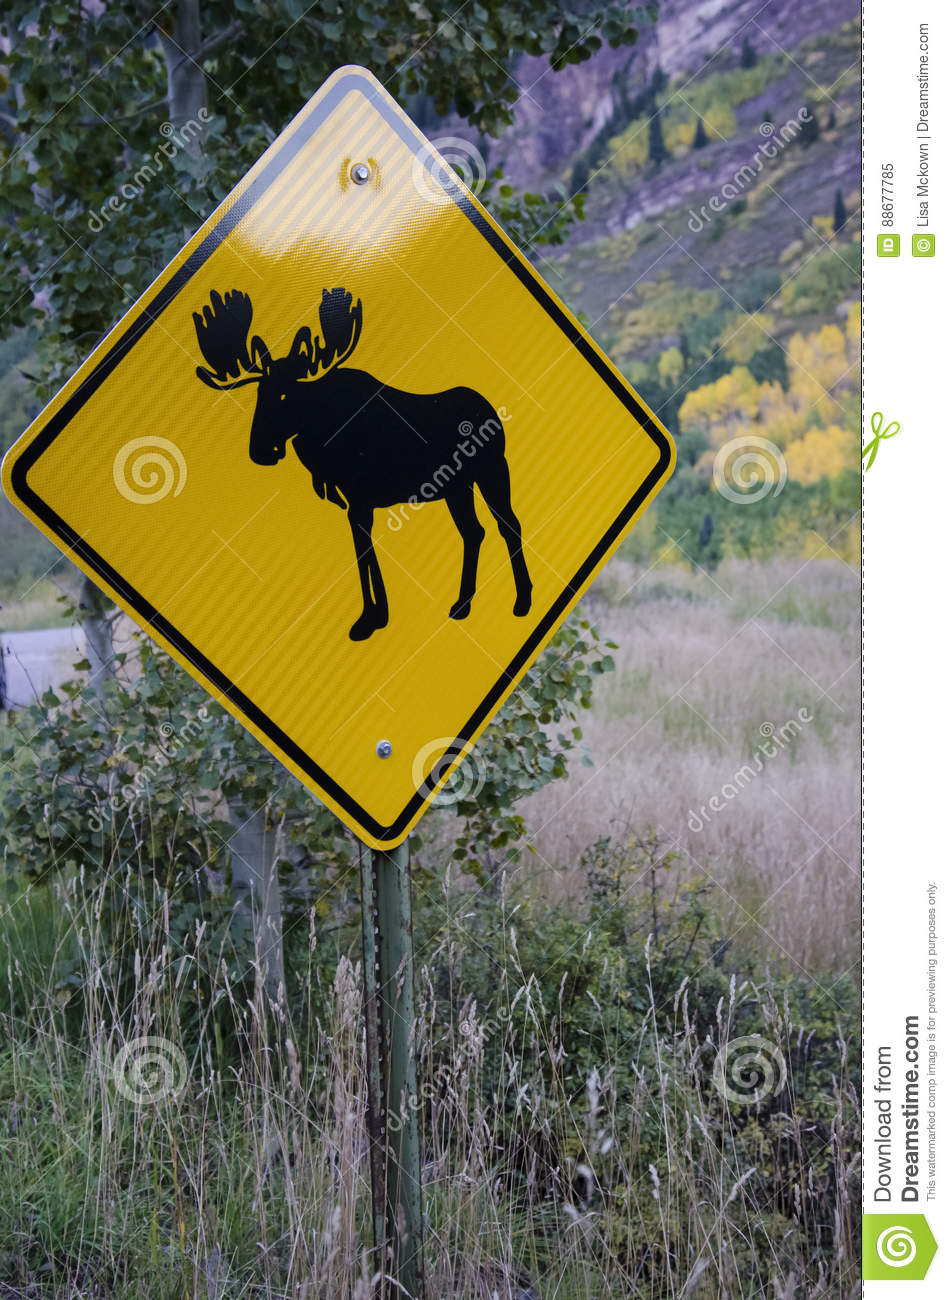 moose crossing sign stock image image of algonquin mammal 88677785